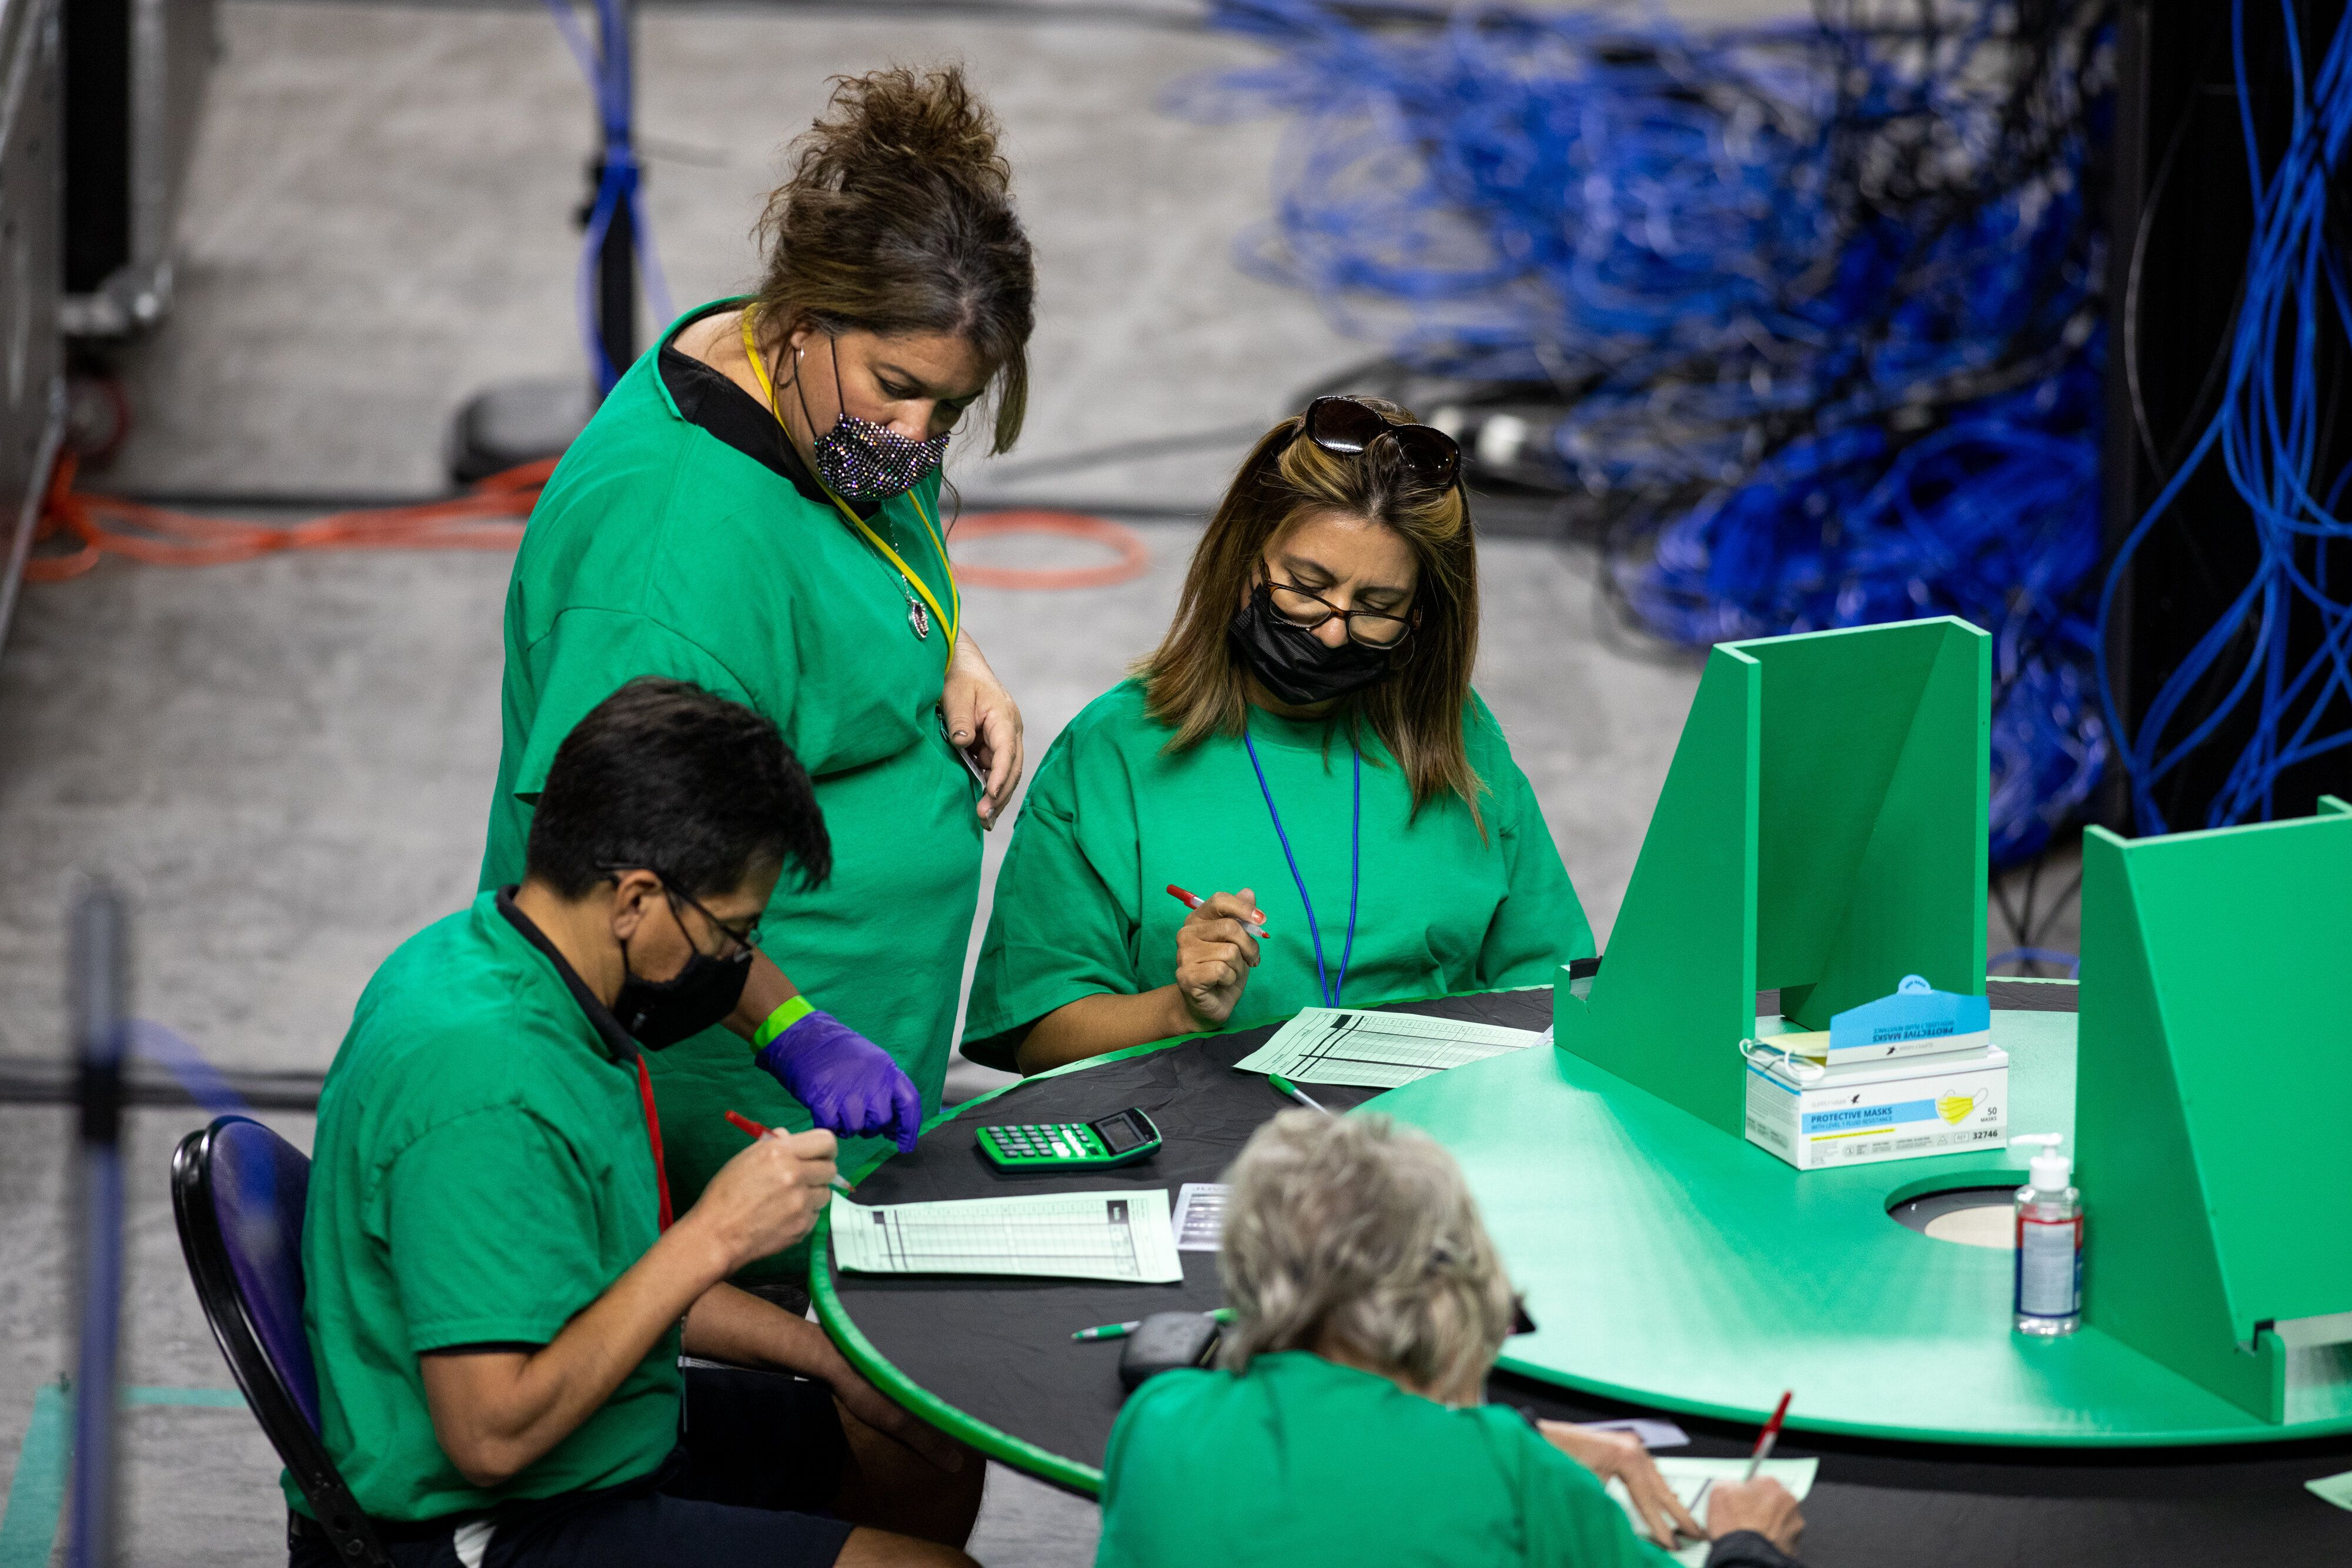 Contractors working for Cyber Ninjas, which was hired by the Arizona state Senate, examine and recount ballots from the 2020